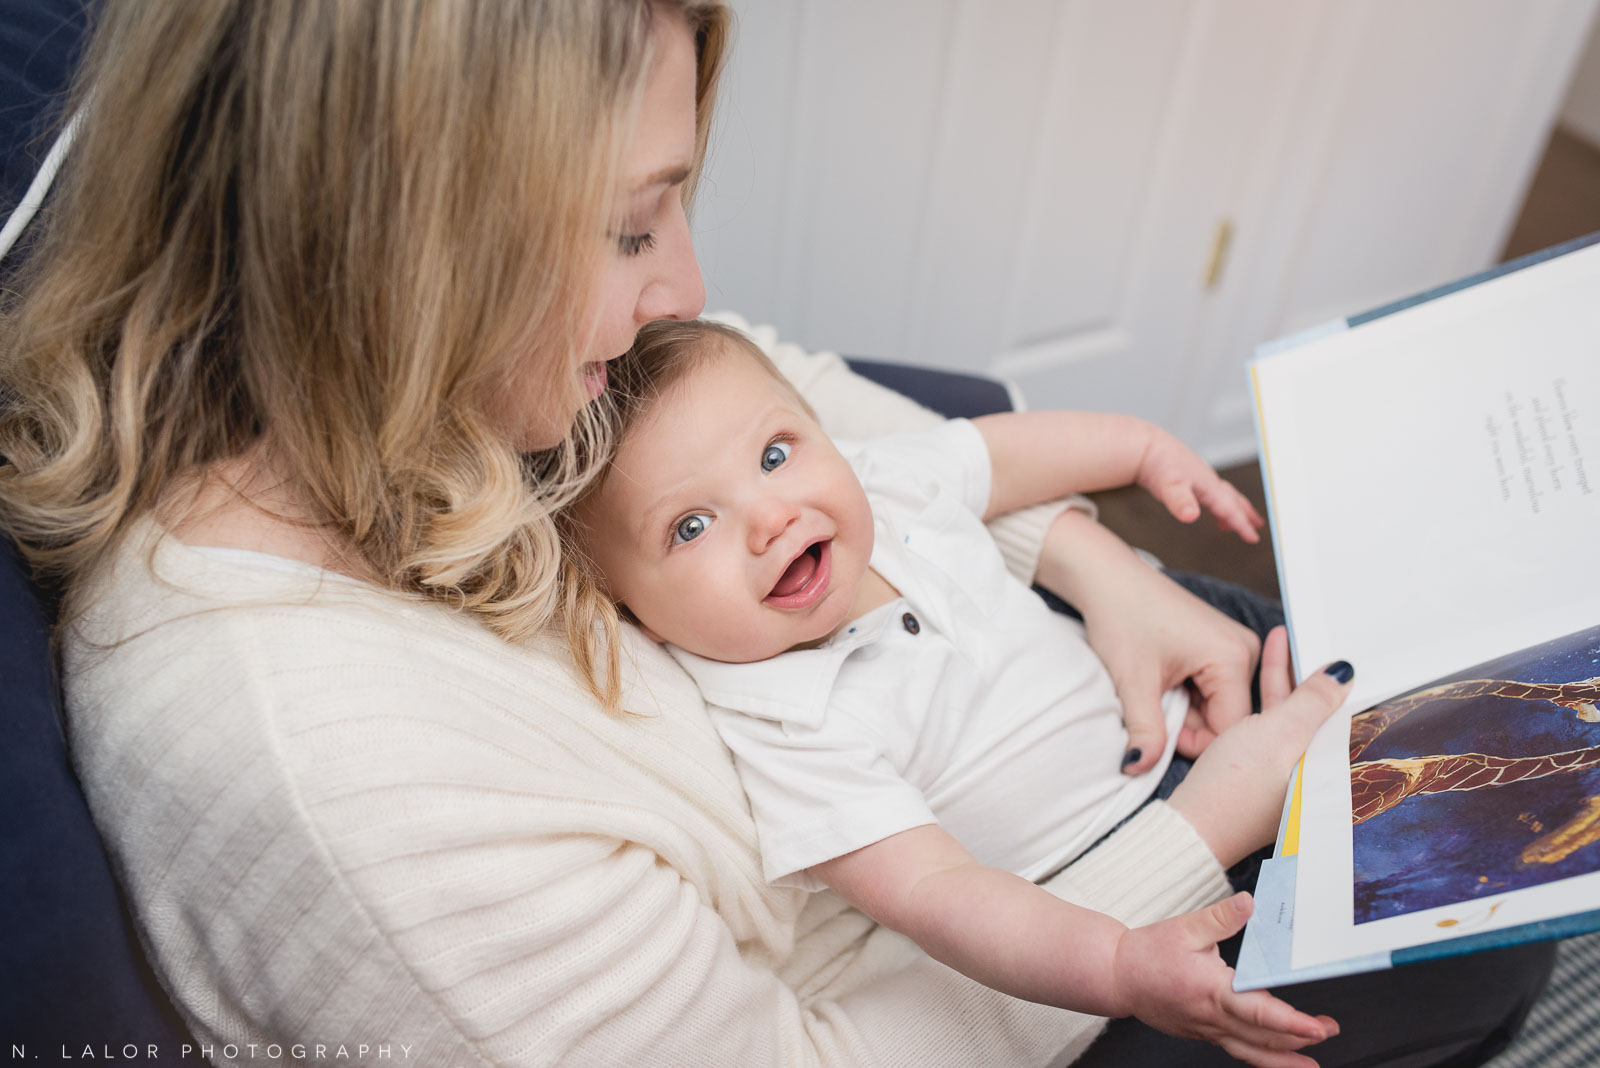 Baby boy reading with Mom. Lifestyle editorial portrait by N. Lalor Photography.